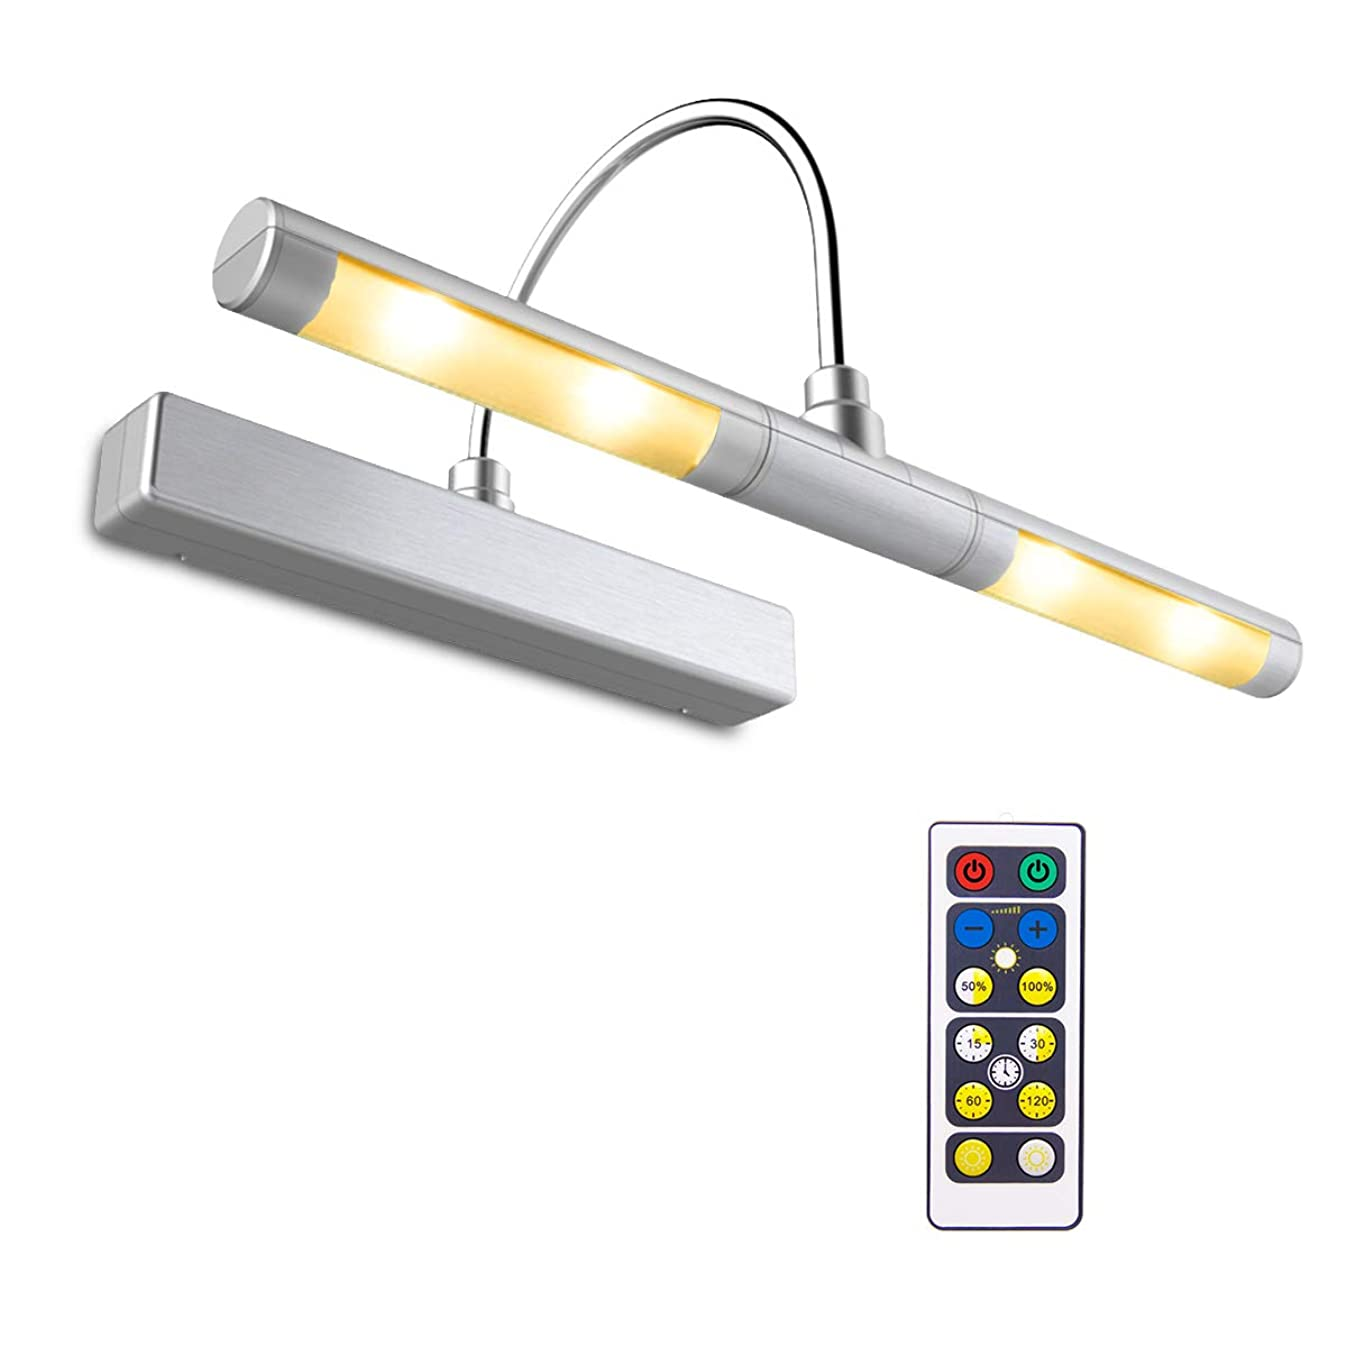 BIGLIGHT Wireless Battery Operated LED Picture Light with Timer & Dimmer, Rotatable Light Heads with 3 Lighting Modes, Remote Controlled Display Lamp for Picture Frame/ Painting/ Portrait/ Art, Silver